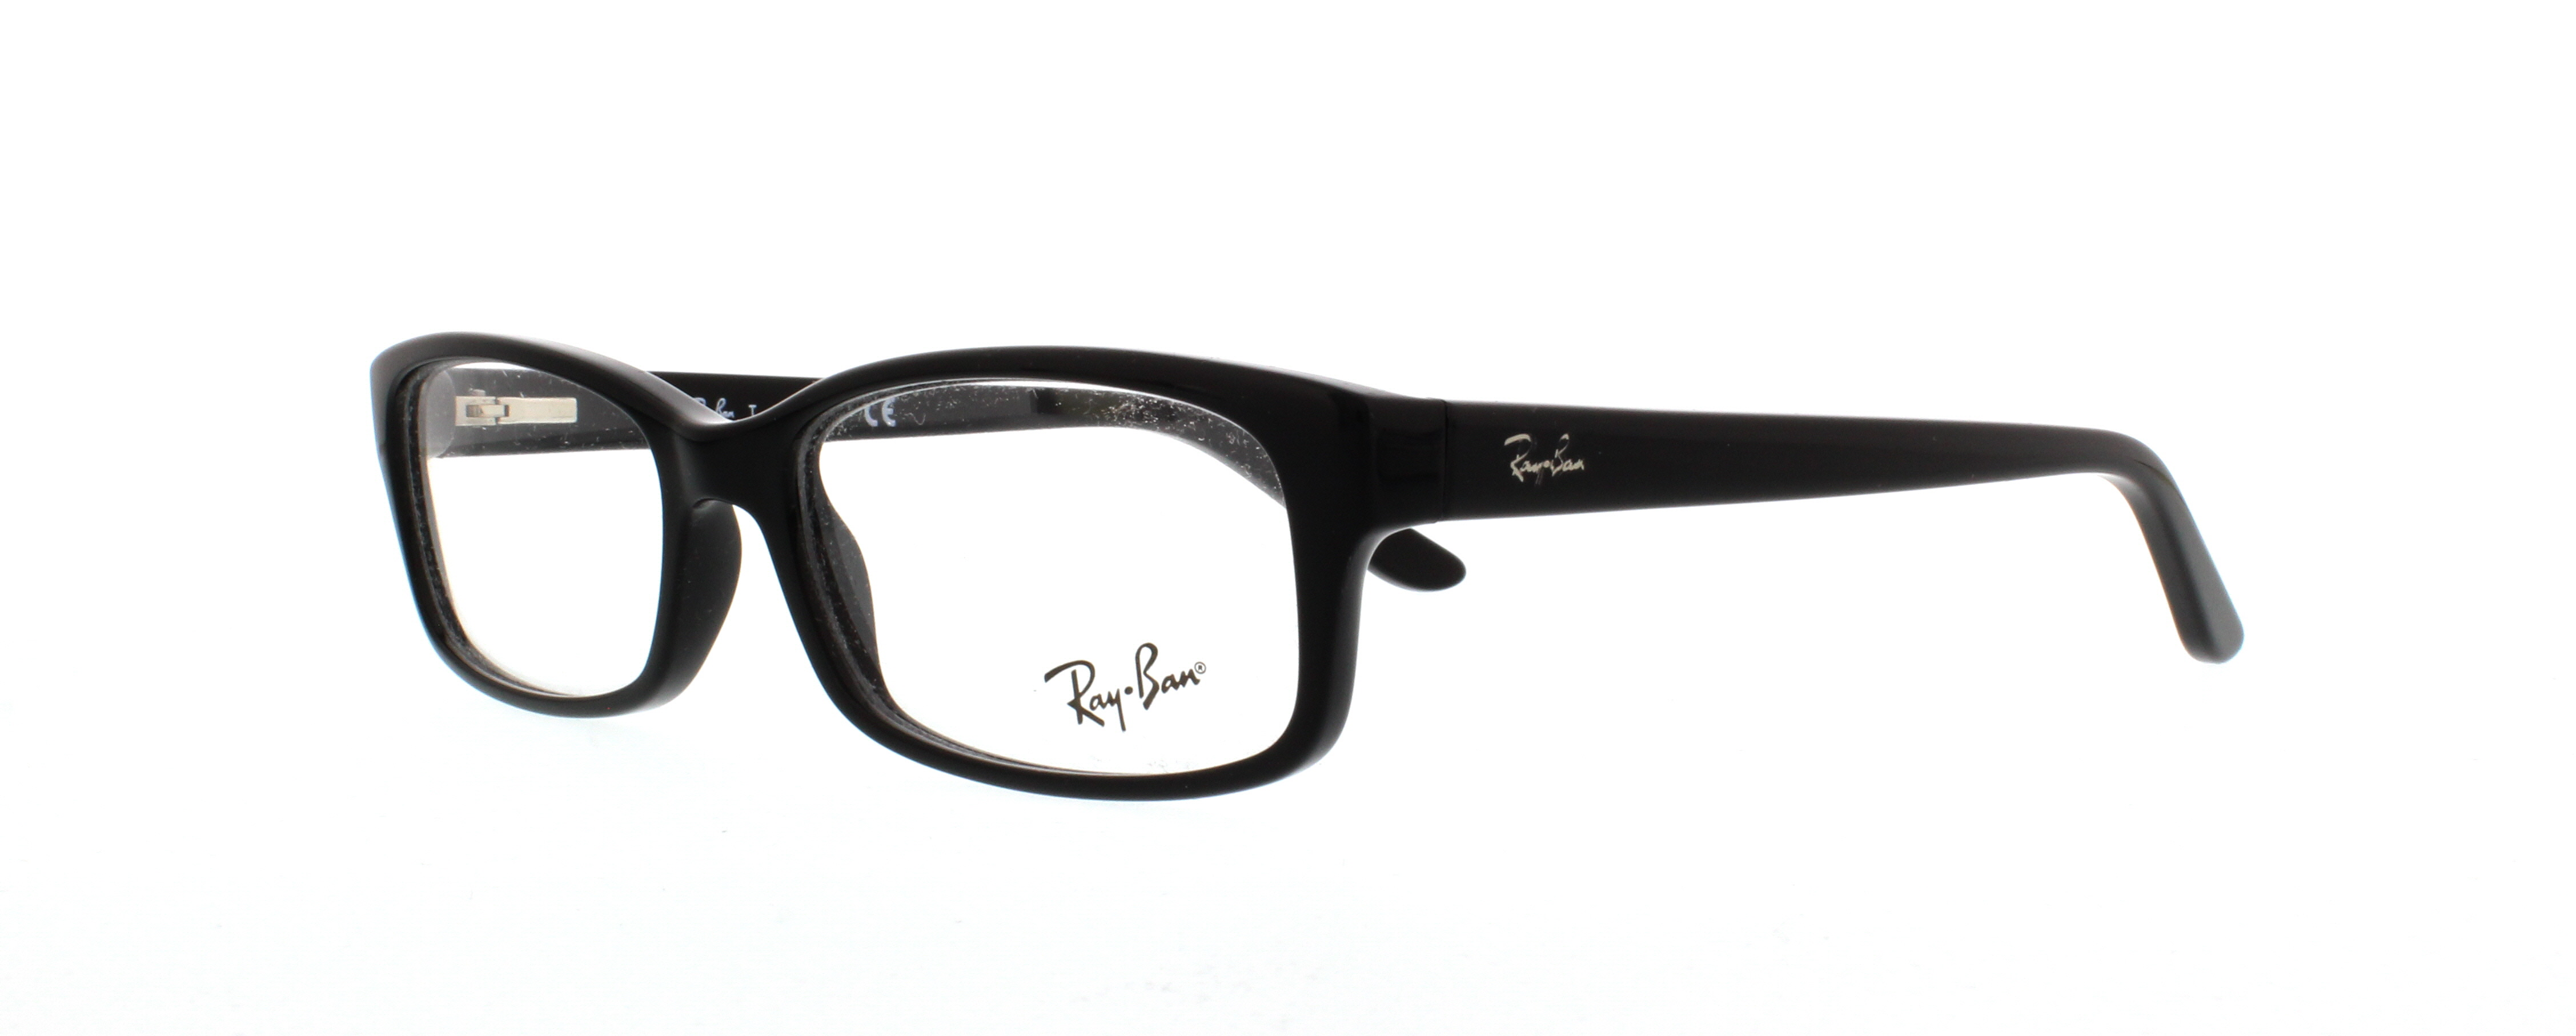 Picture of Ray Ban RX5187